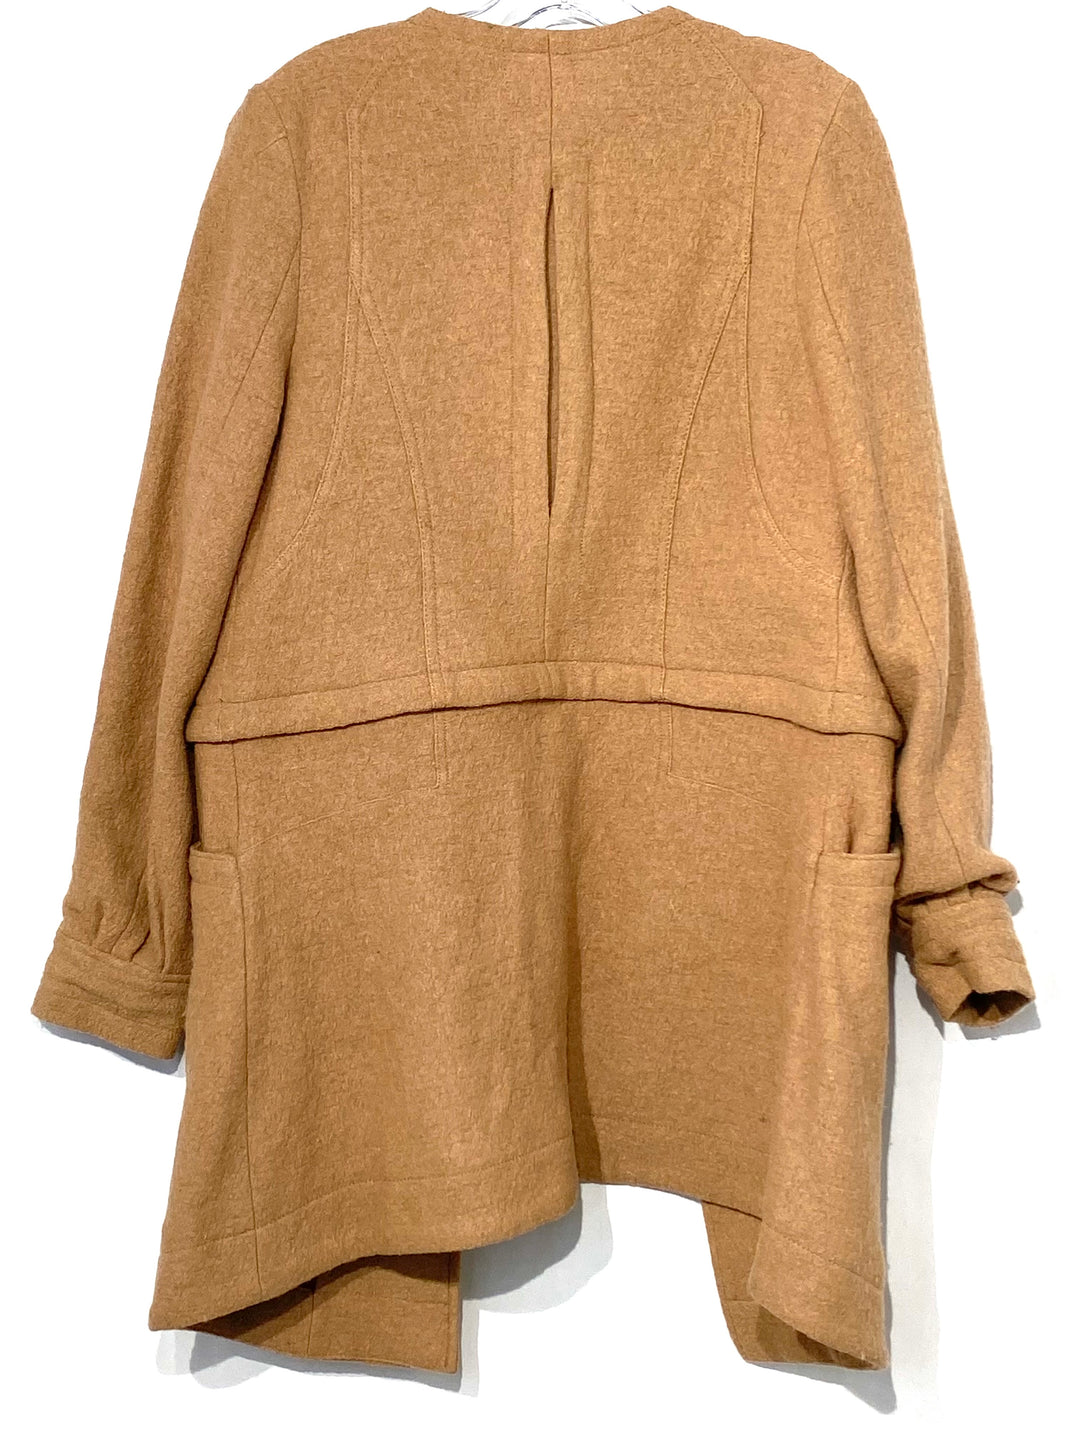 Photo #1 - BRAND: FREE PEOPLE <BR>STYLE: JACKET OUTDOOR <BR>COLOR: BEIGE <BR>SIZE: M <BR>SKU: 262-262100-271<BR>COAT THAT UNZIPS TO BE A SHORT JACKET